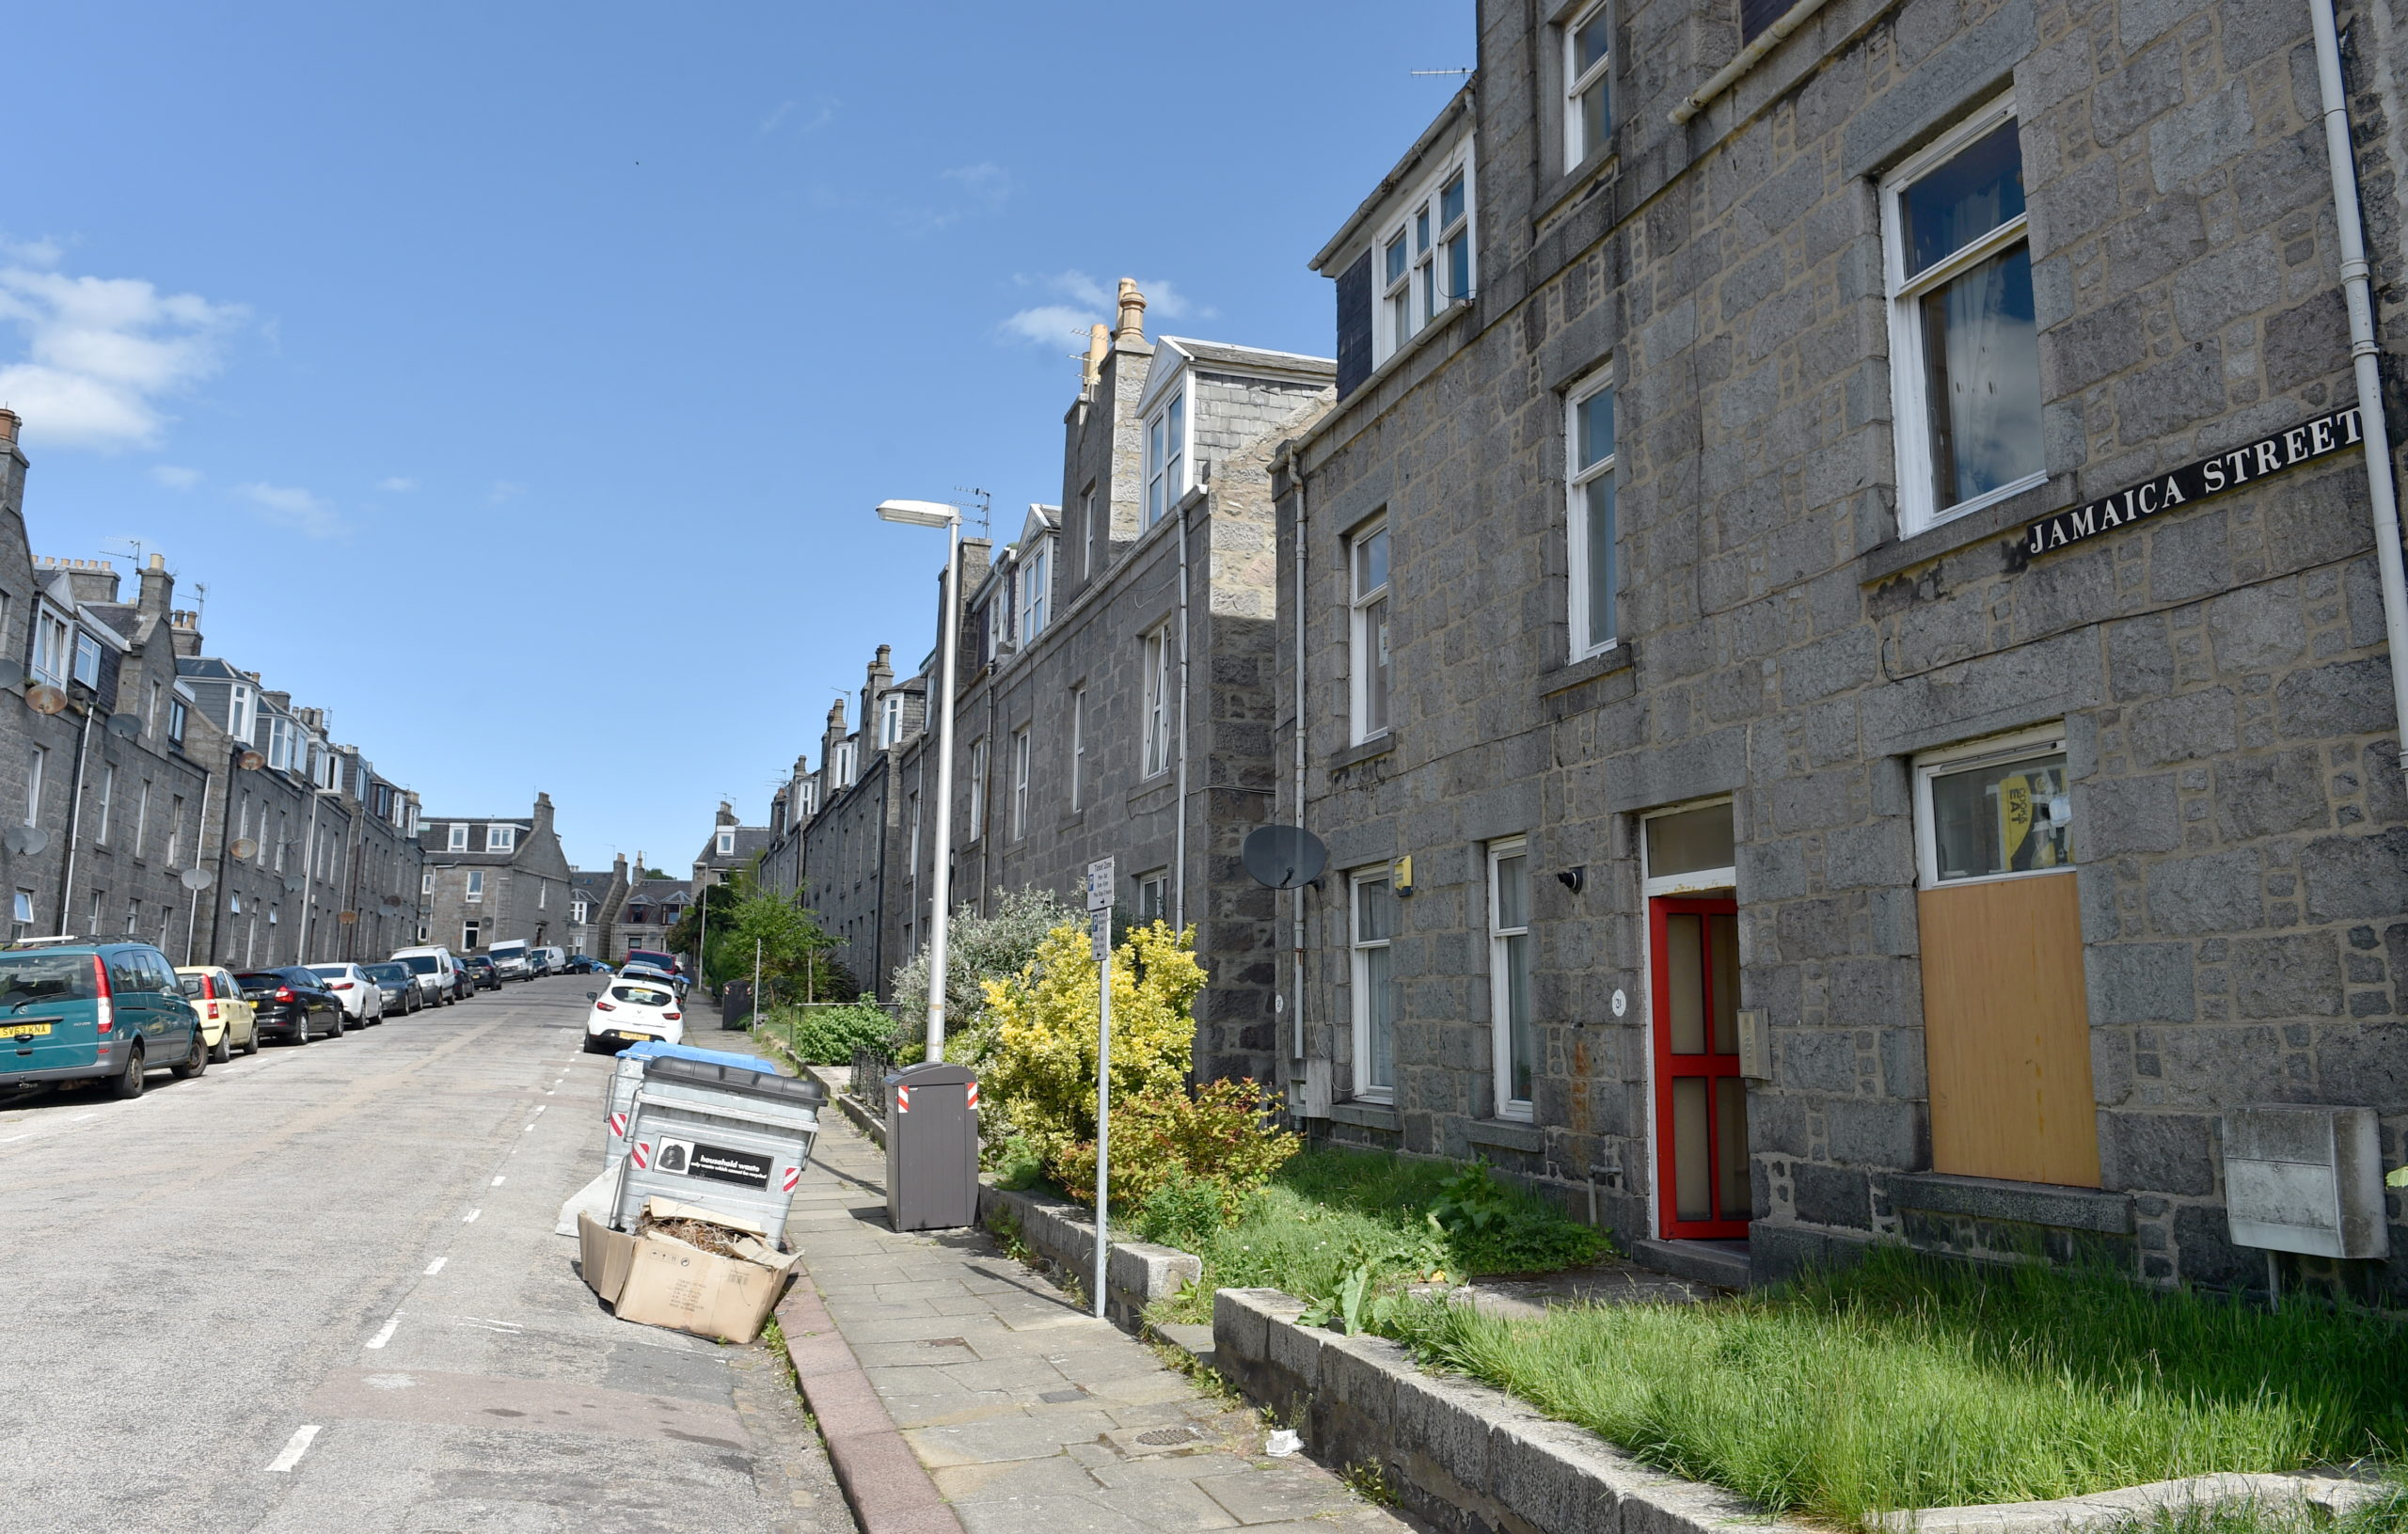 Pictured is a locator of Jamaica Street, Aberdeen Pictured on 26/05/2020 Picture by DARRELL BENNS   CR0021527